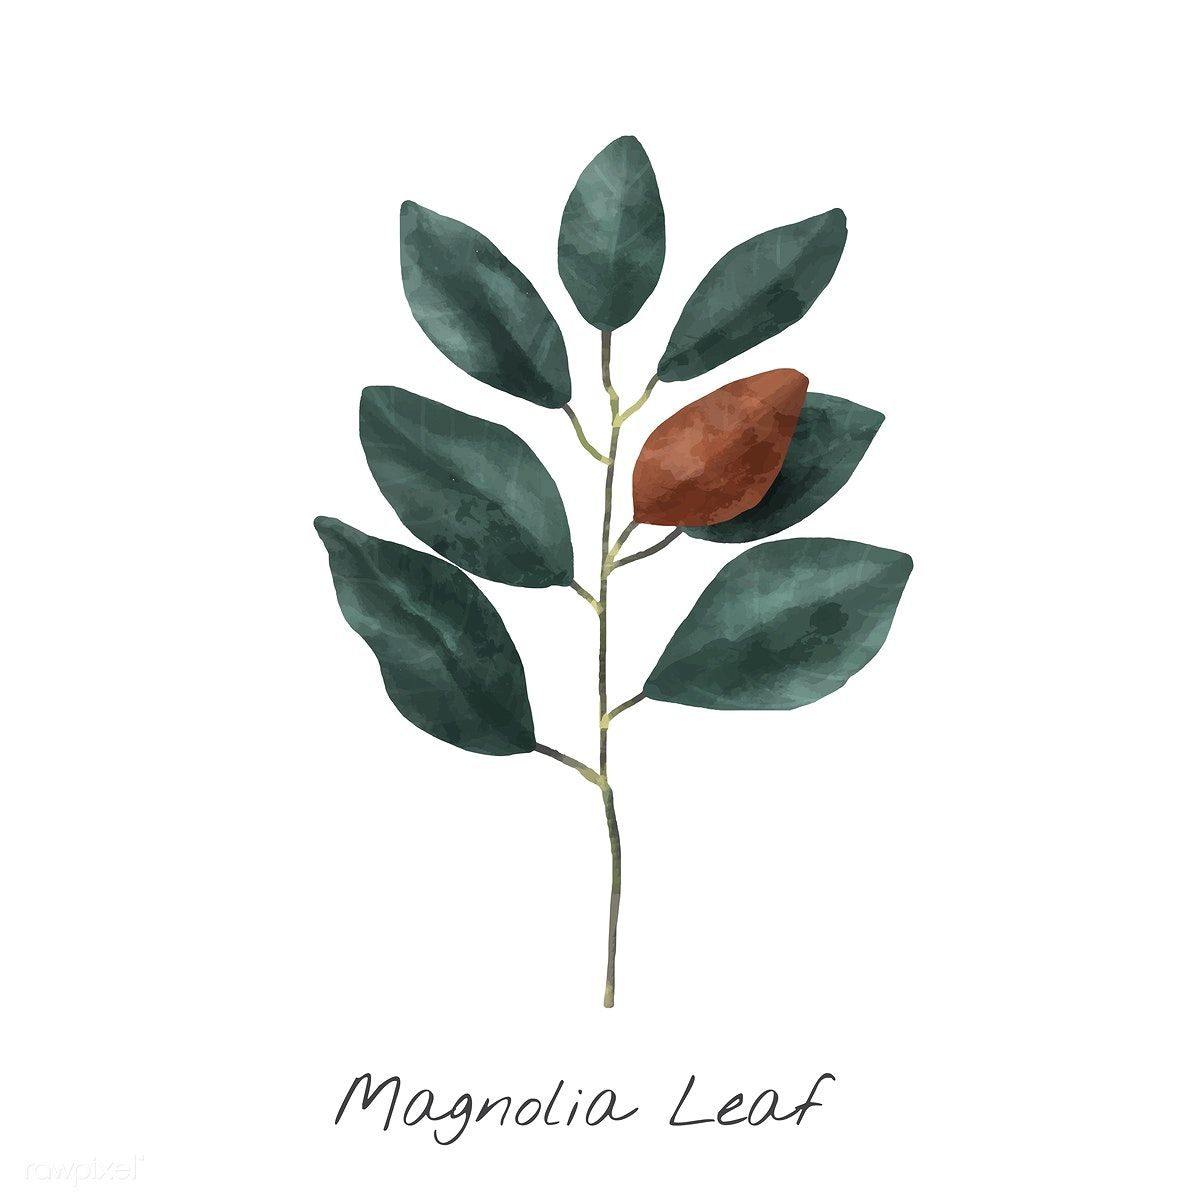 Download Premium Vector Of Illustration Of Magnolia Leaf Isolated On White Watercolor Plants Flower Illustration Plant Illustration